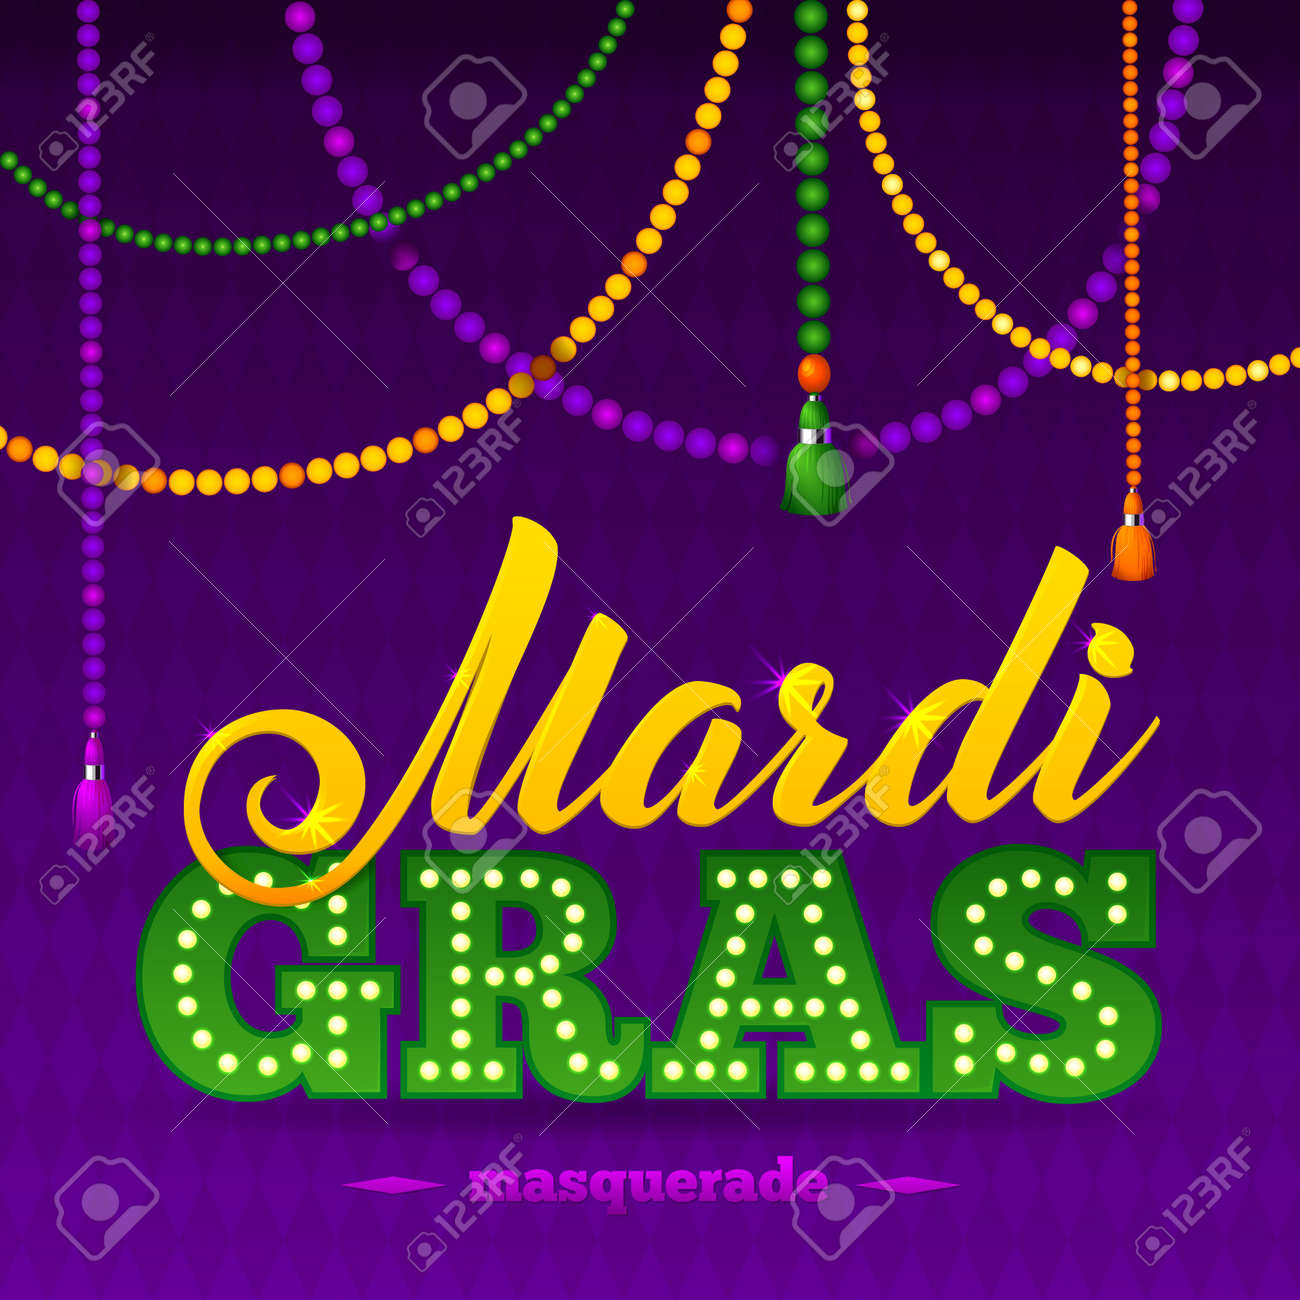 Mardi Gras Party Poster. Calligraphy and Typography Card. Beads Tassels and Fleur De Lis Symbol. Holiday poster or placard template - 50559589